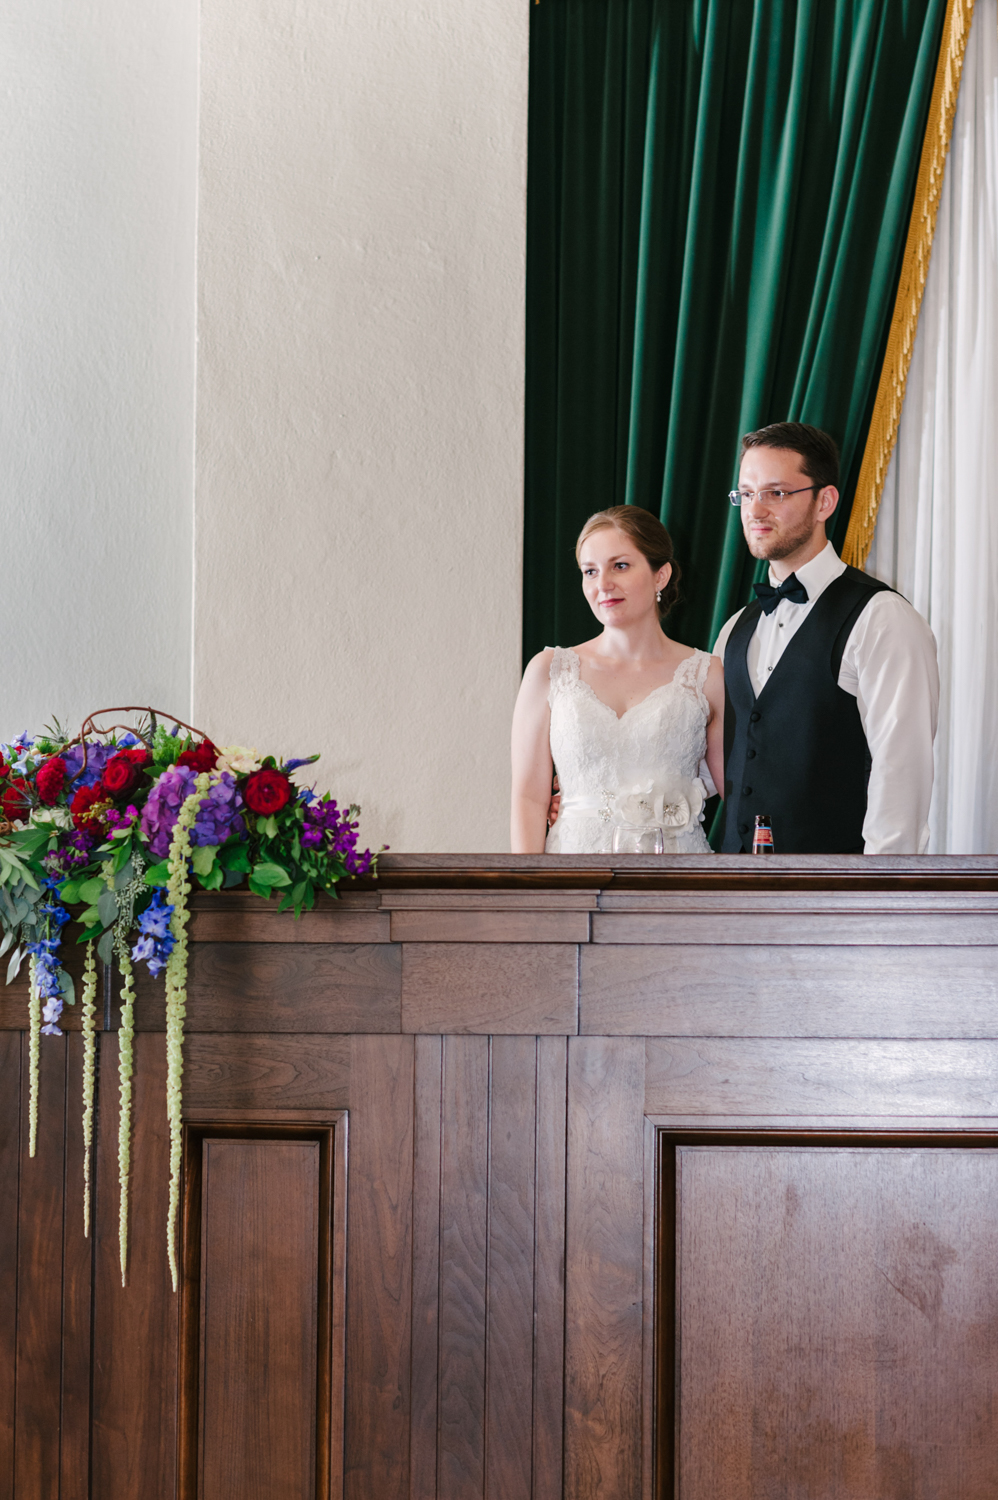 Dayton Old Courthouse Reception by Andrea Dozier Photography